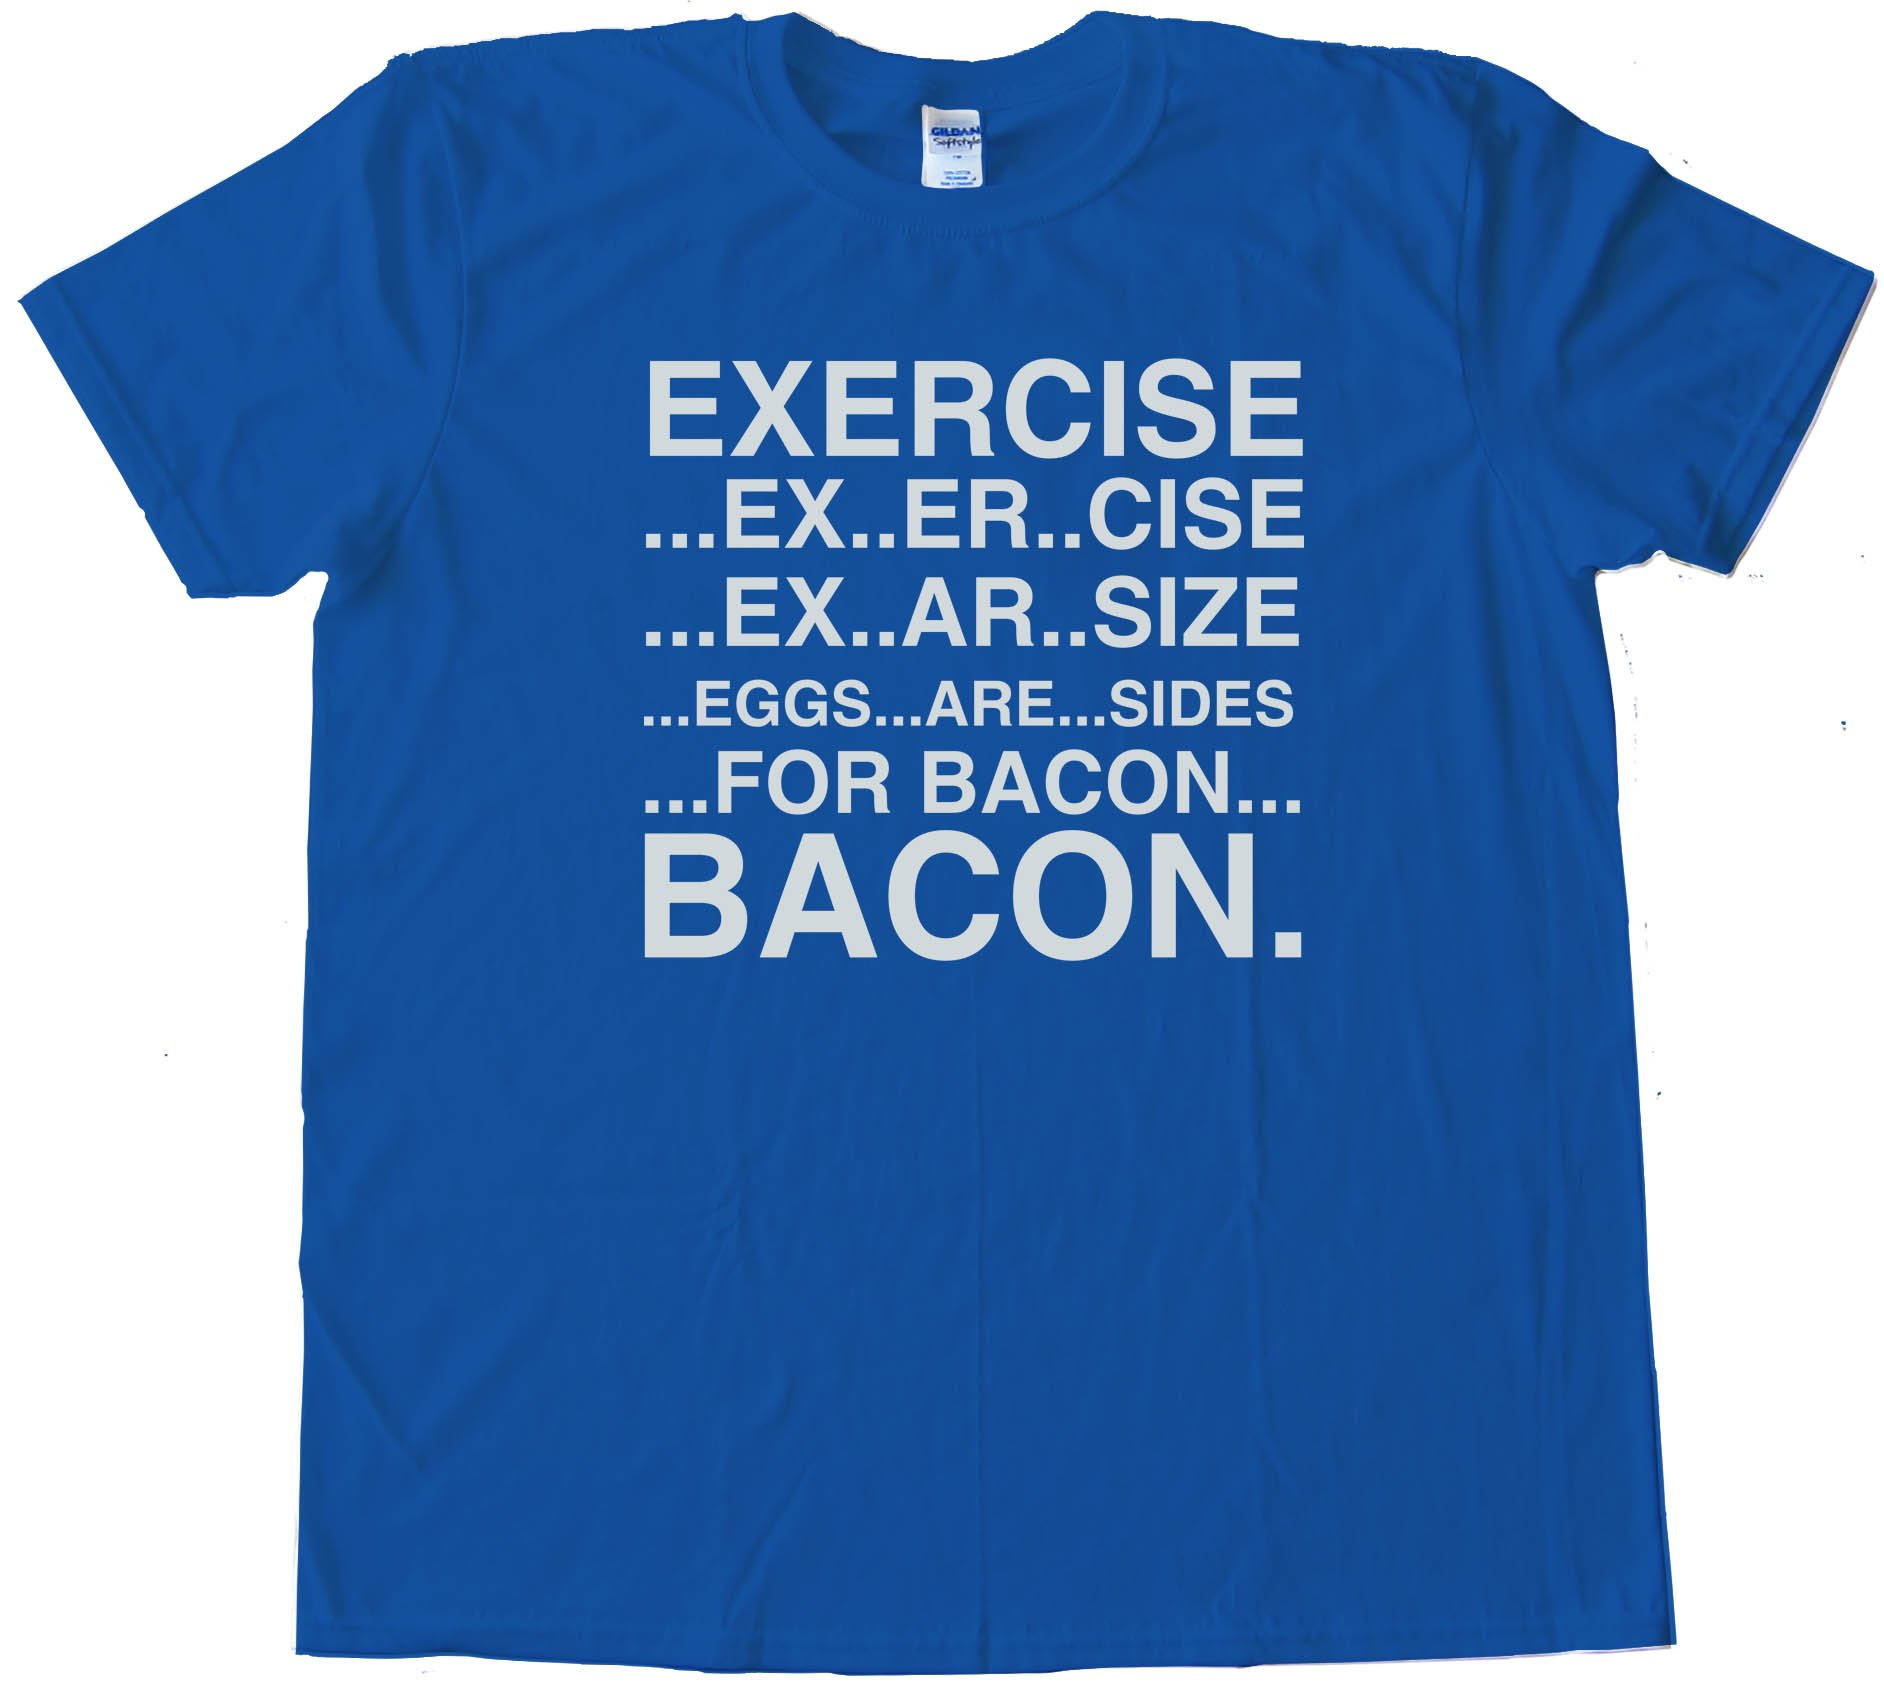 Bacon &Amp; Bacon &Amp; Bacon &Amp; Bacon. Tee Shirt